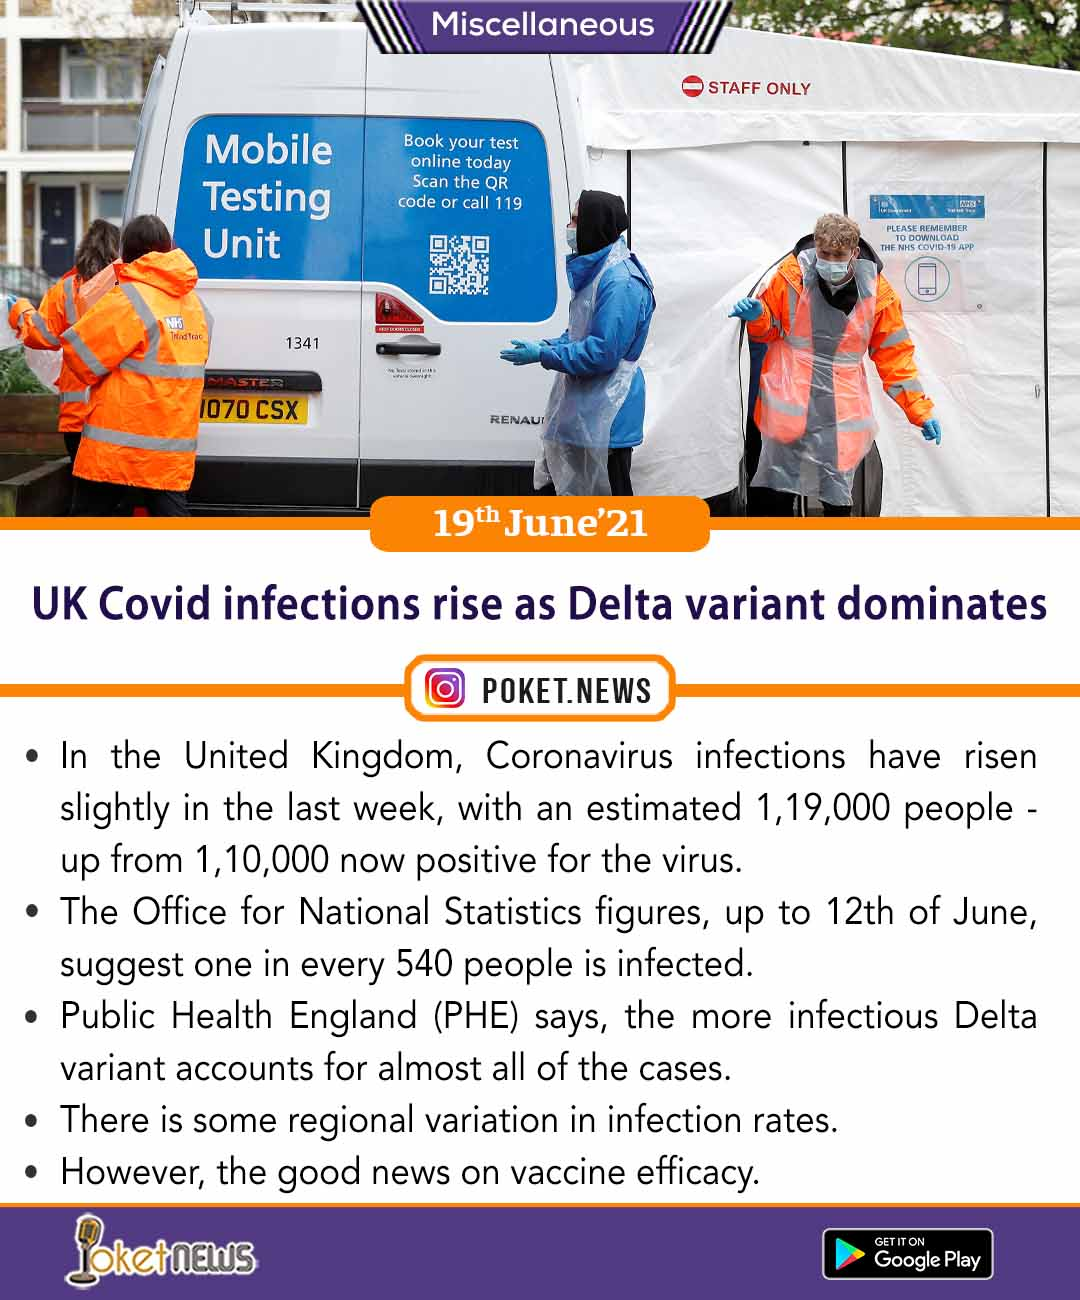 UK Covid infections rise as Delta variant dominates